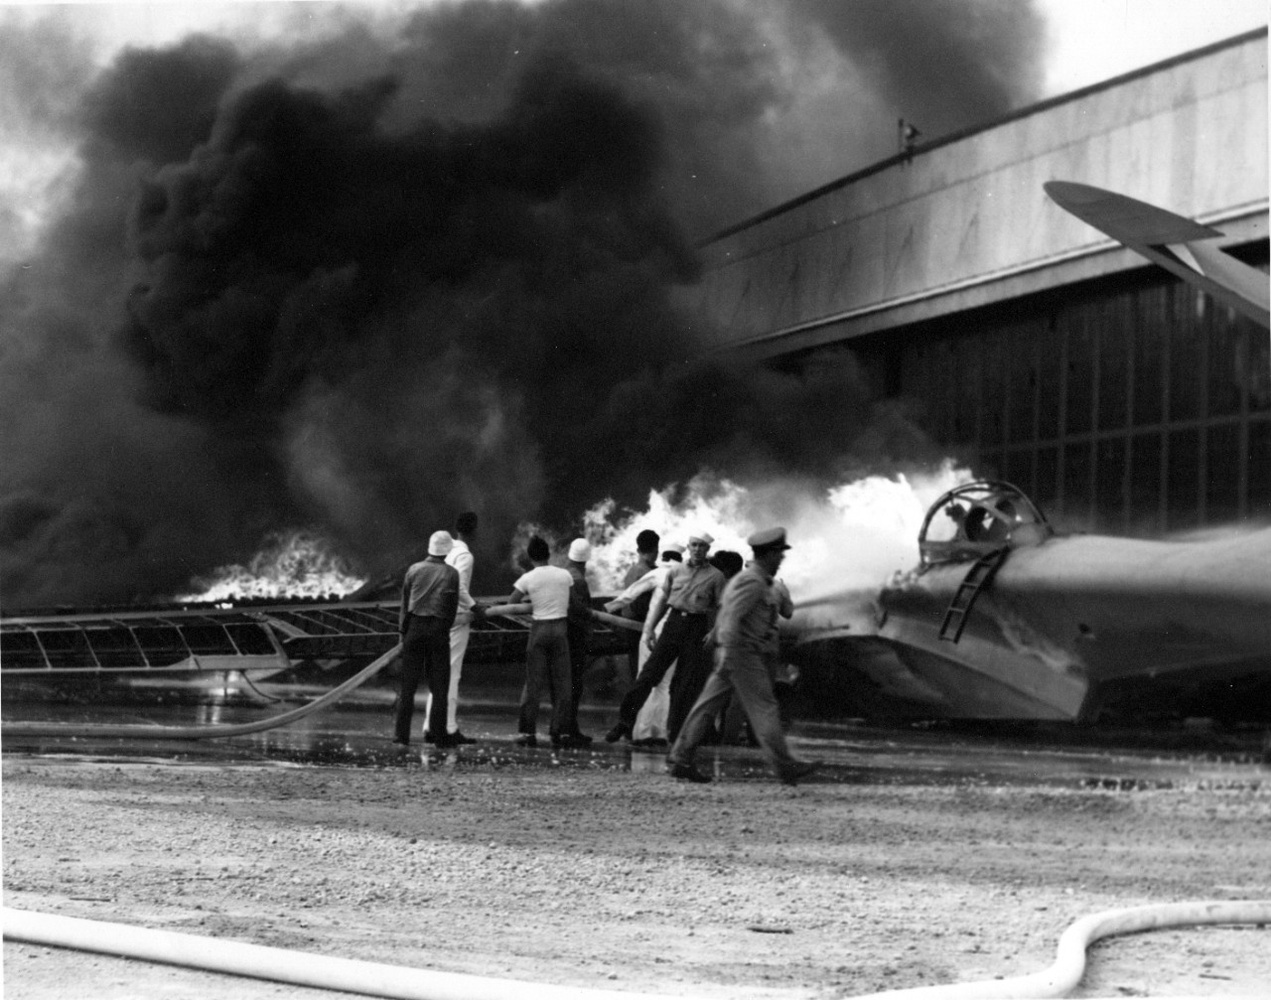 A patrol bomber burning at Naval Air Station Kaneohe, on Oahu, with crews trying to put out the fires.